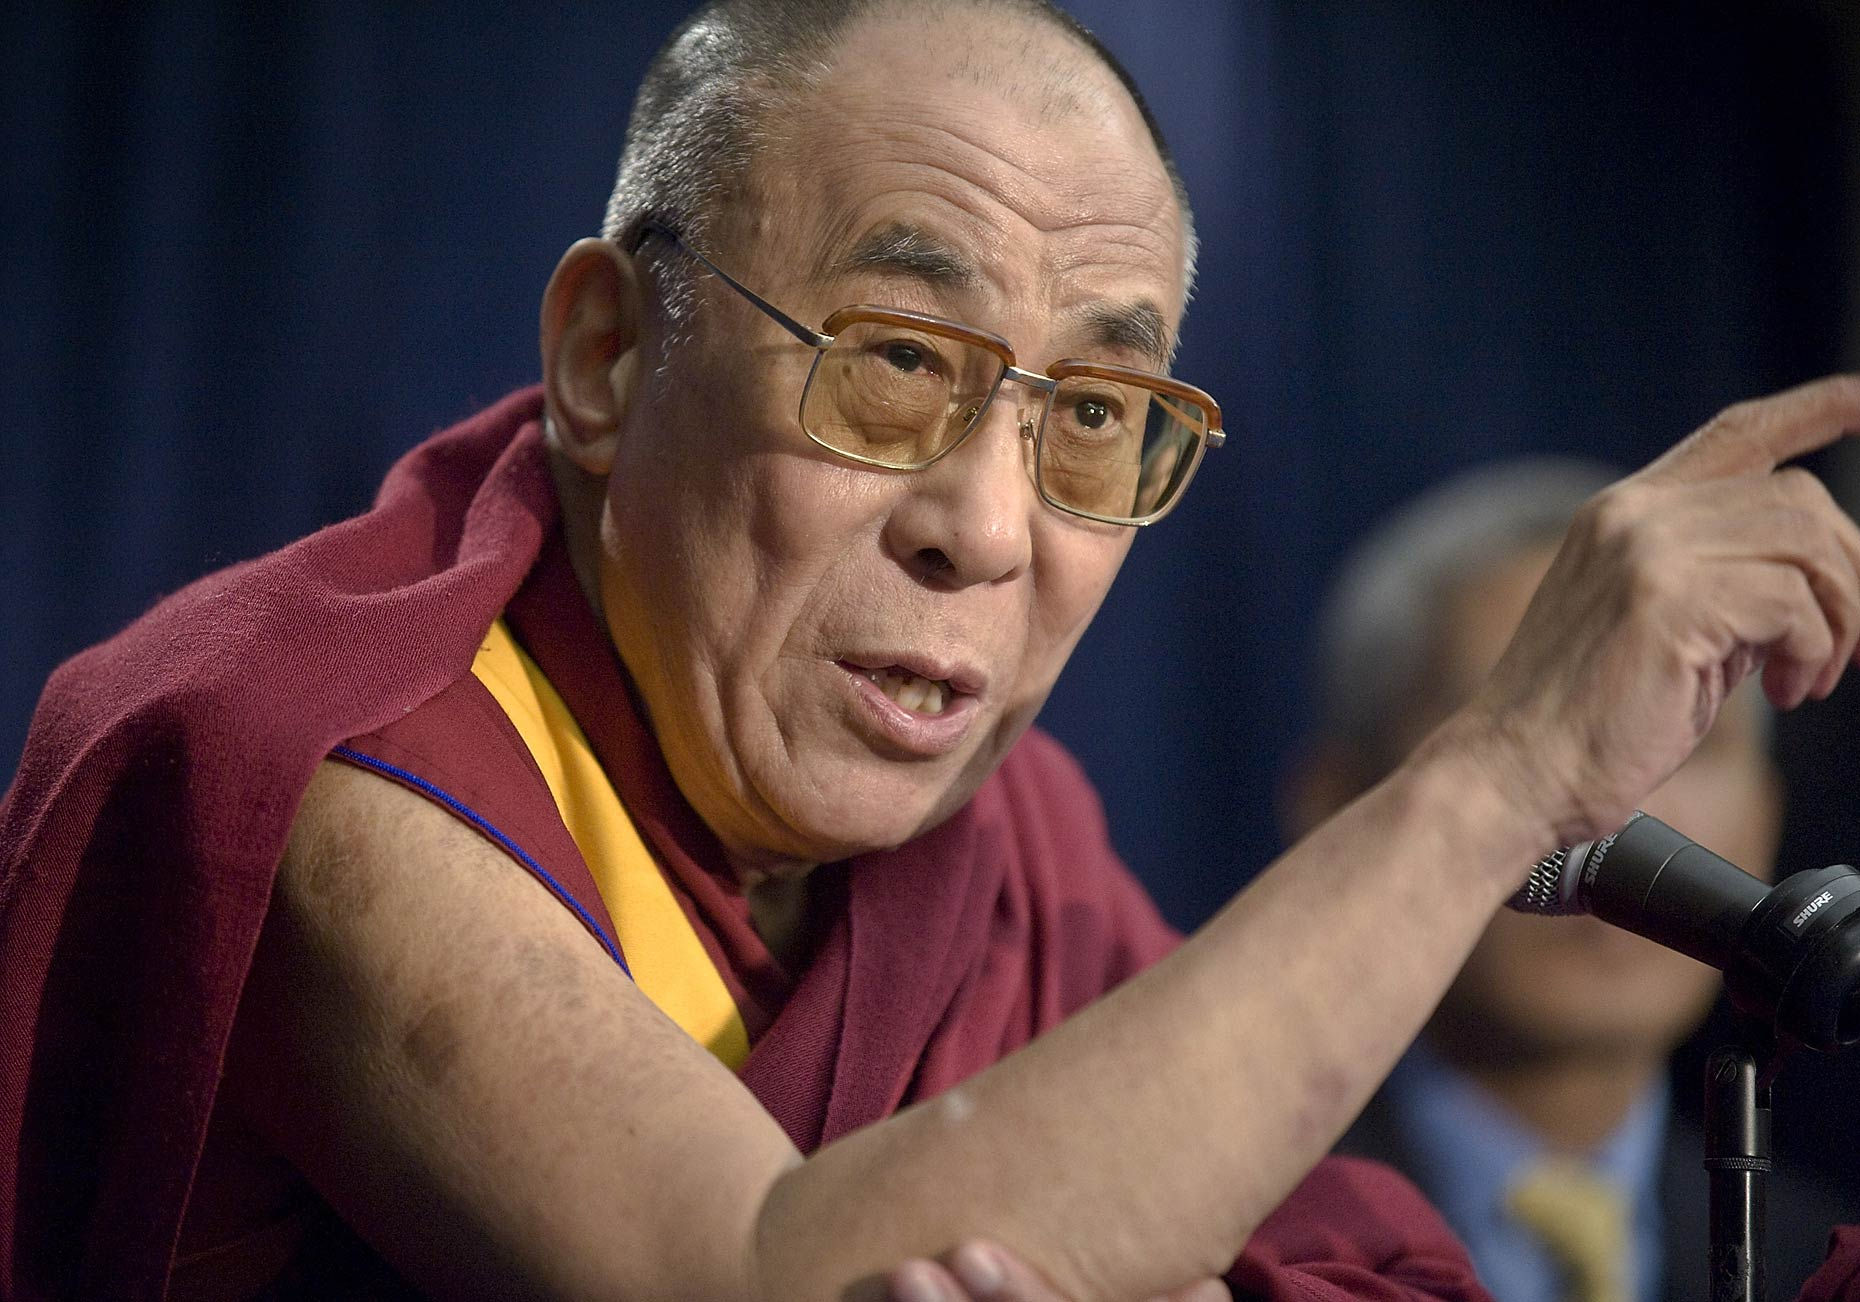 PEO_PhotoReporters-His-Holiness-the-Dalai-Lama